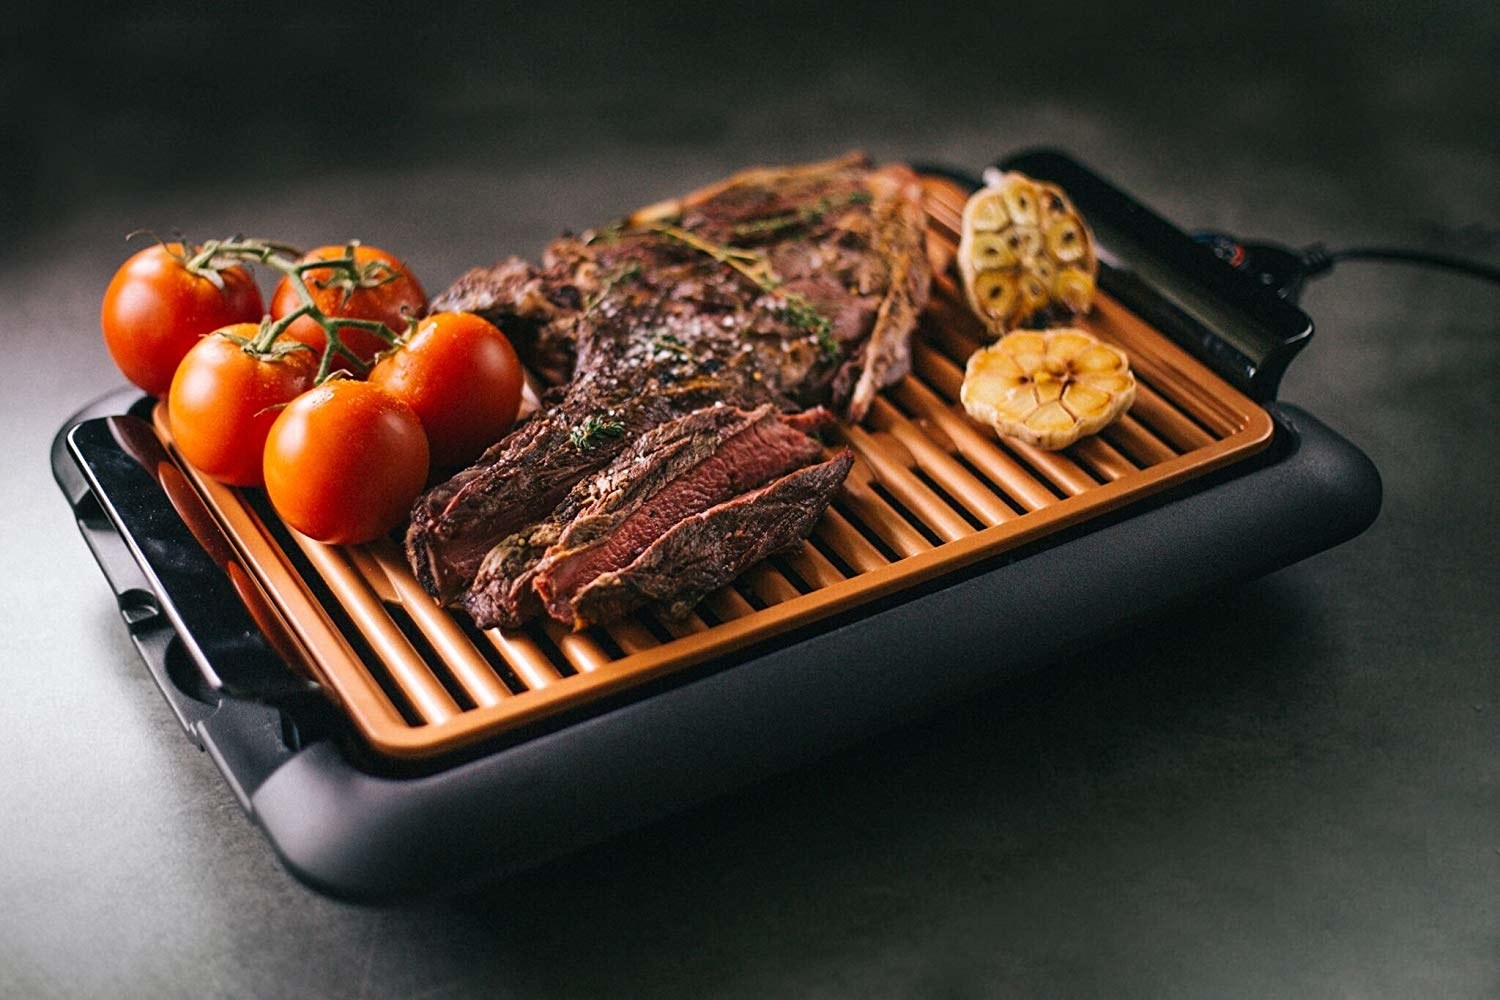 The small electric griddle cooking meat